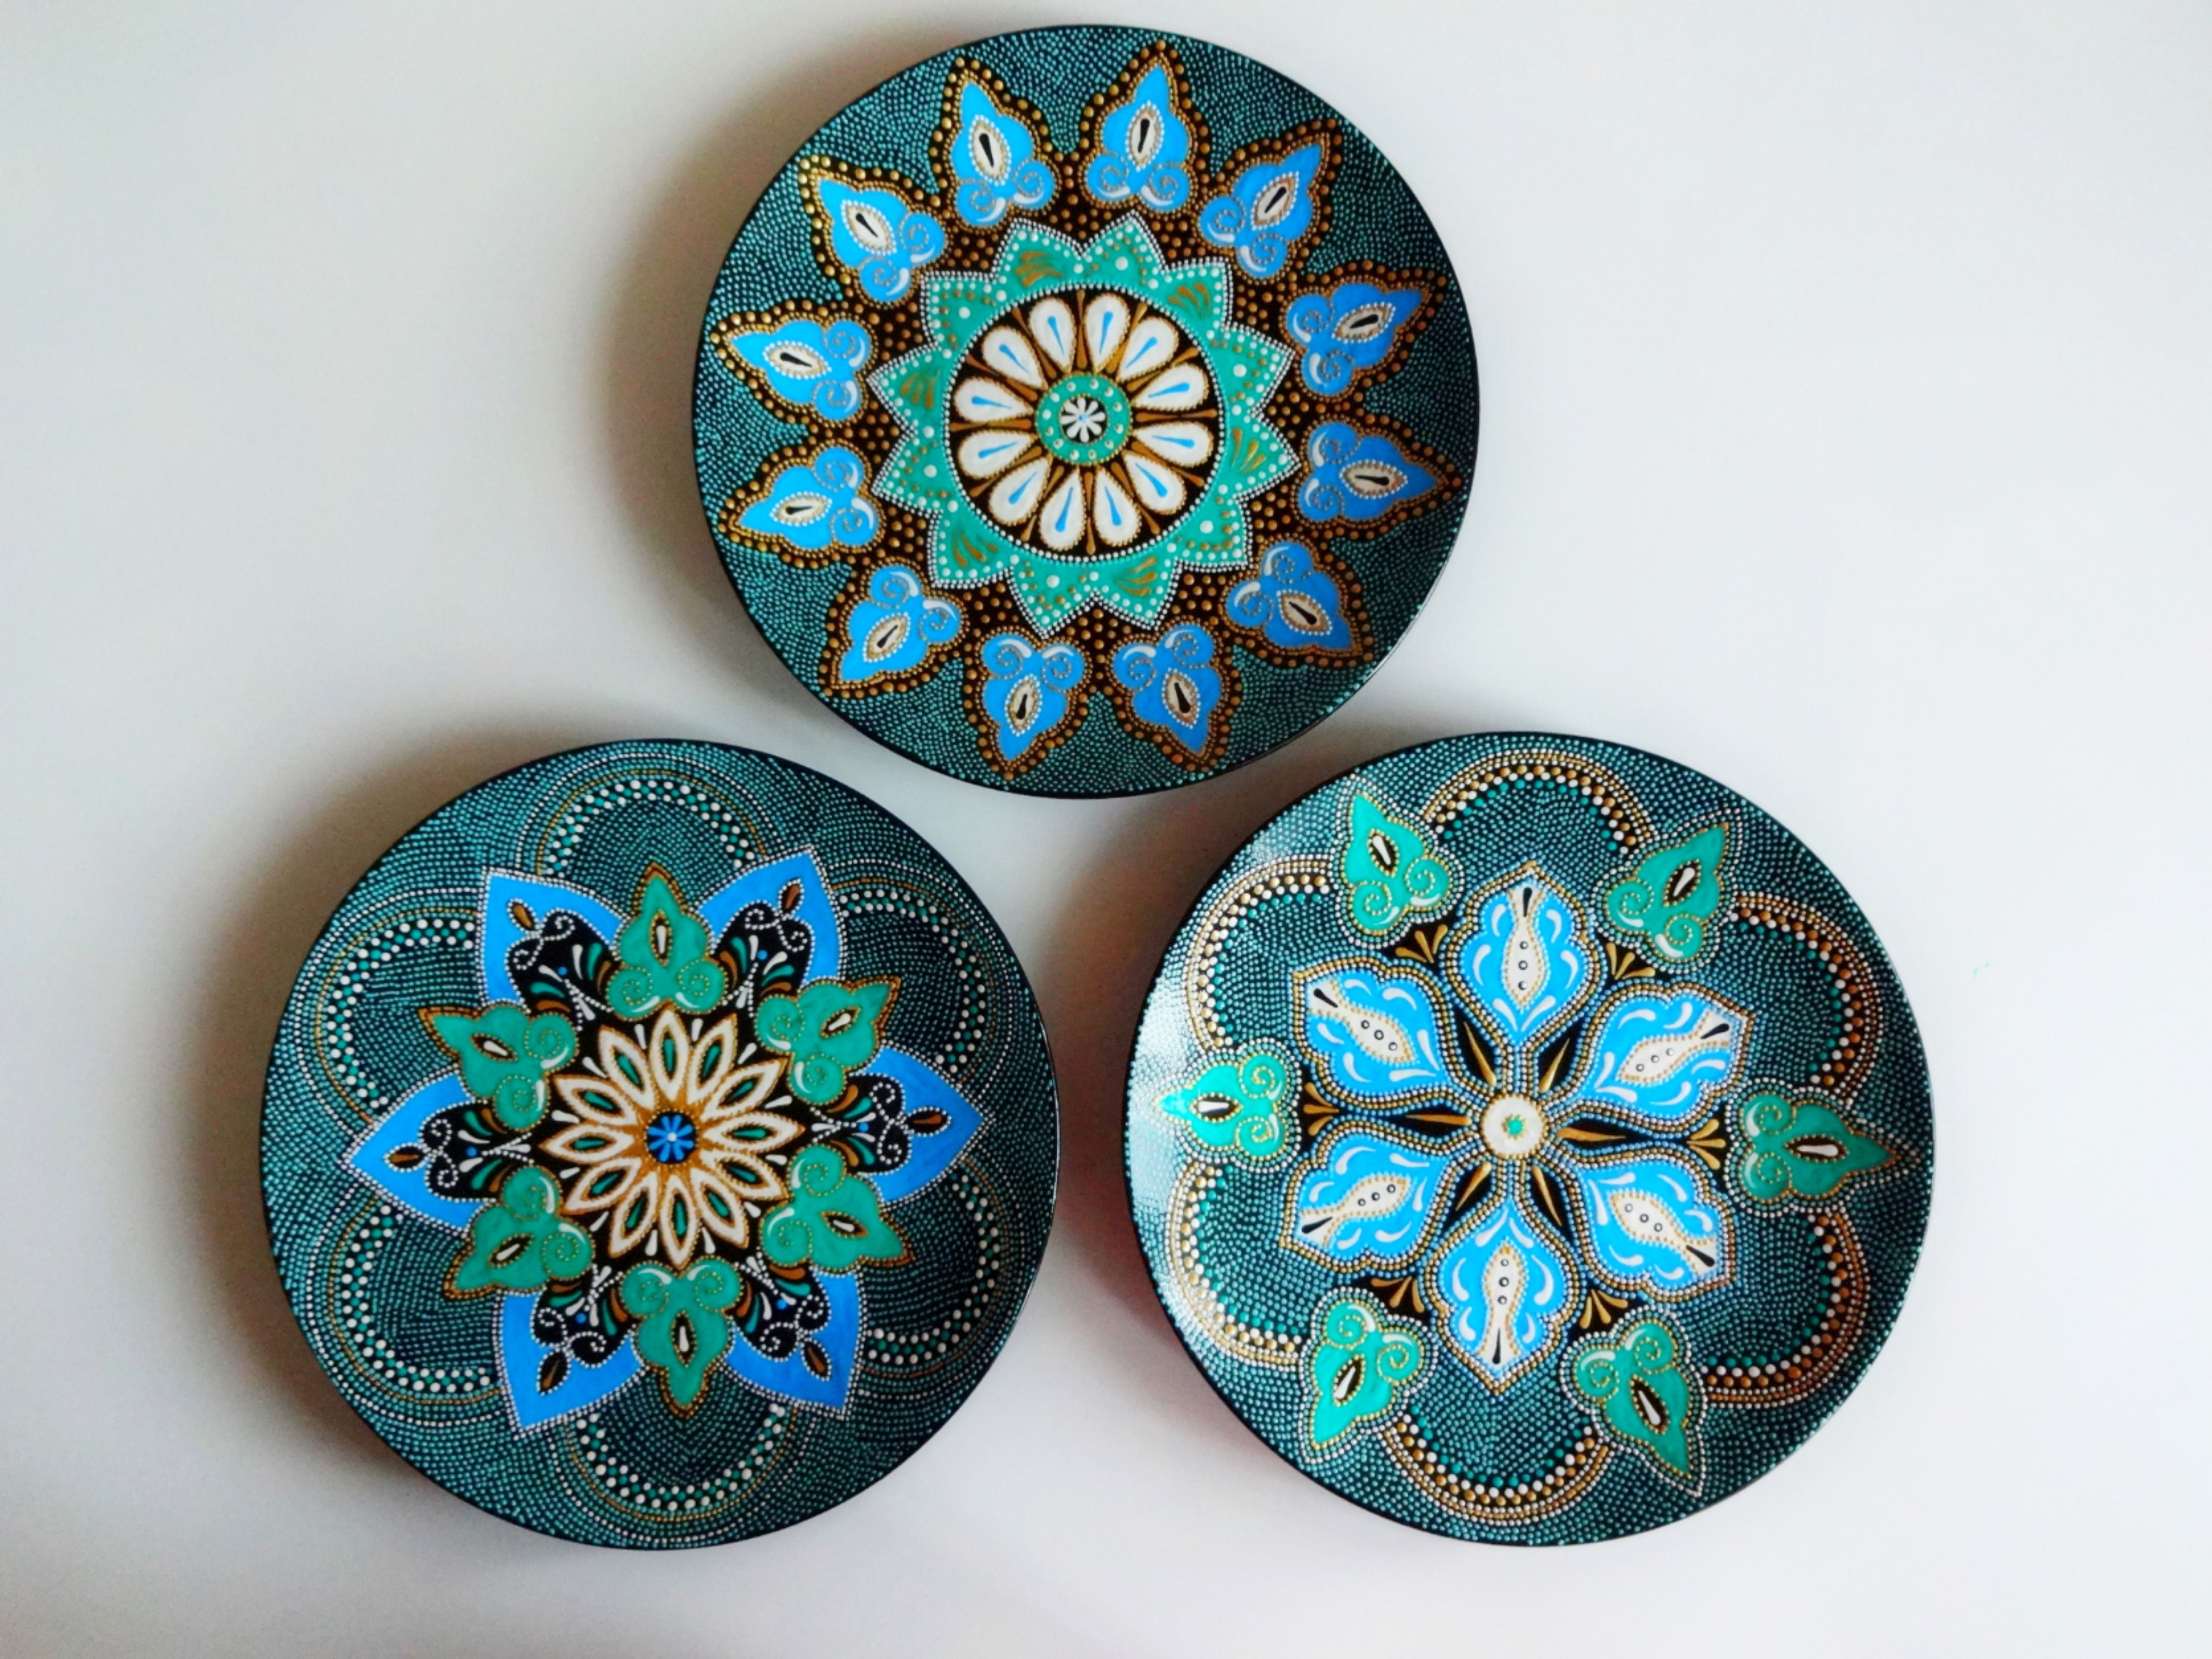 Set Of Decorative Plates For Hanging Large Decorative Hand Painted Plates Colorful Plates Majolica Plates Mandala Plates Ceramic Plates In 2021 Hand Painted Plates Decorative Plates Painted Plates